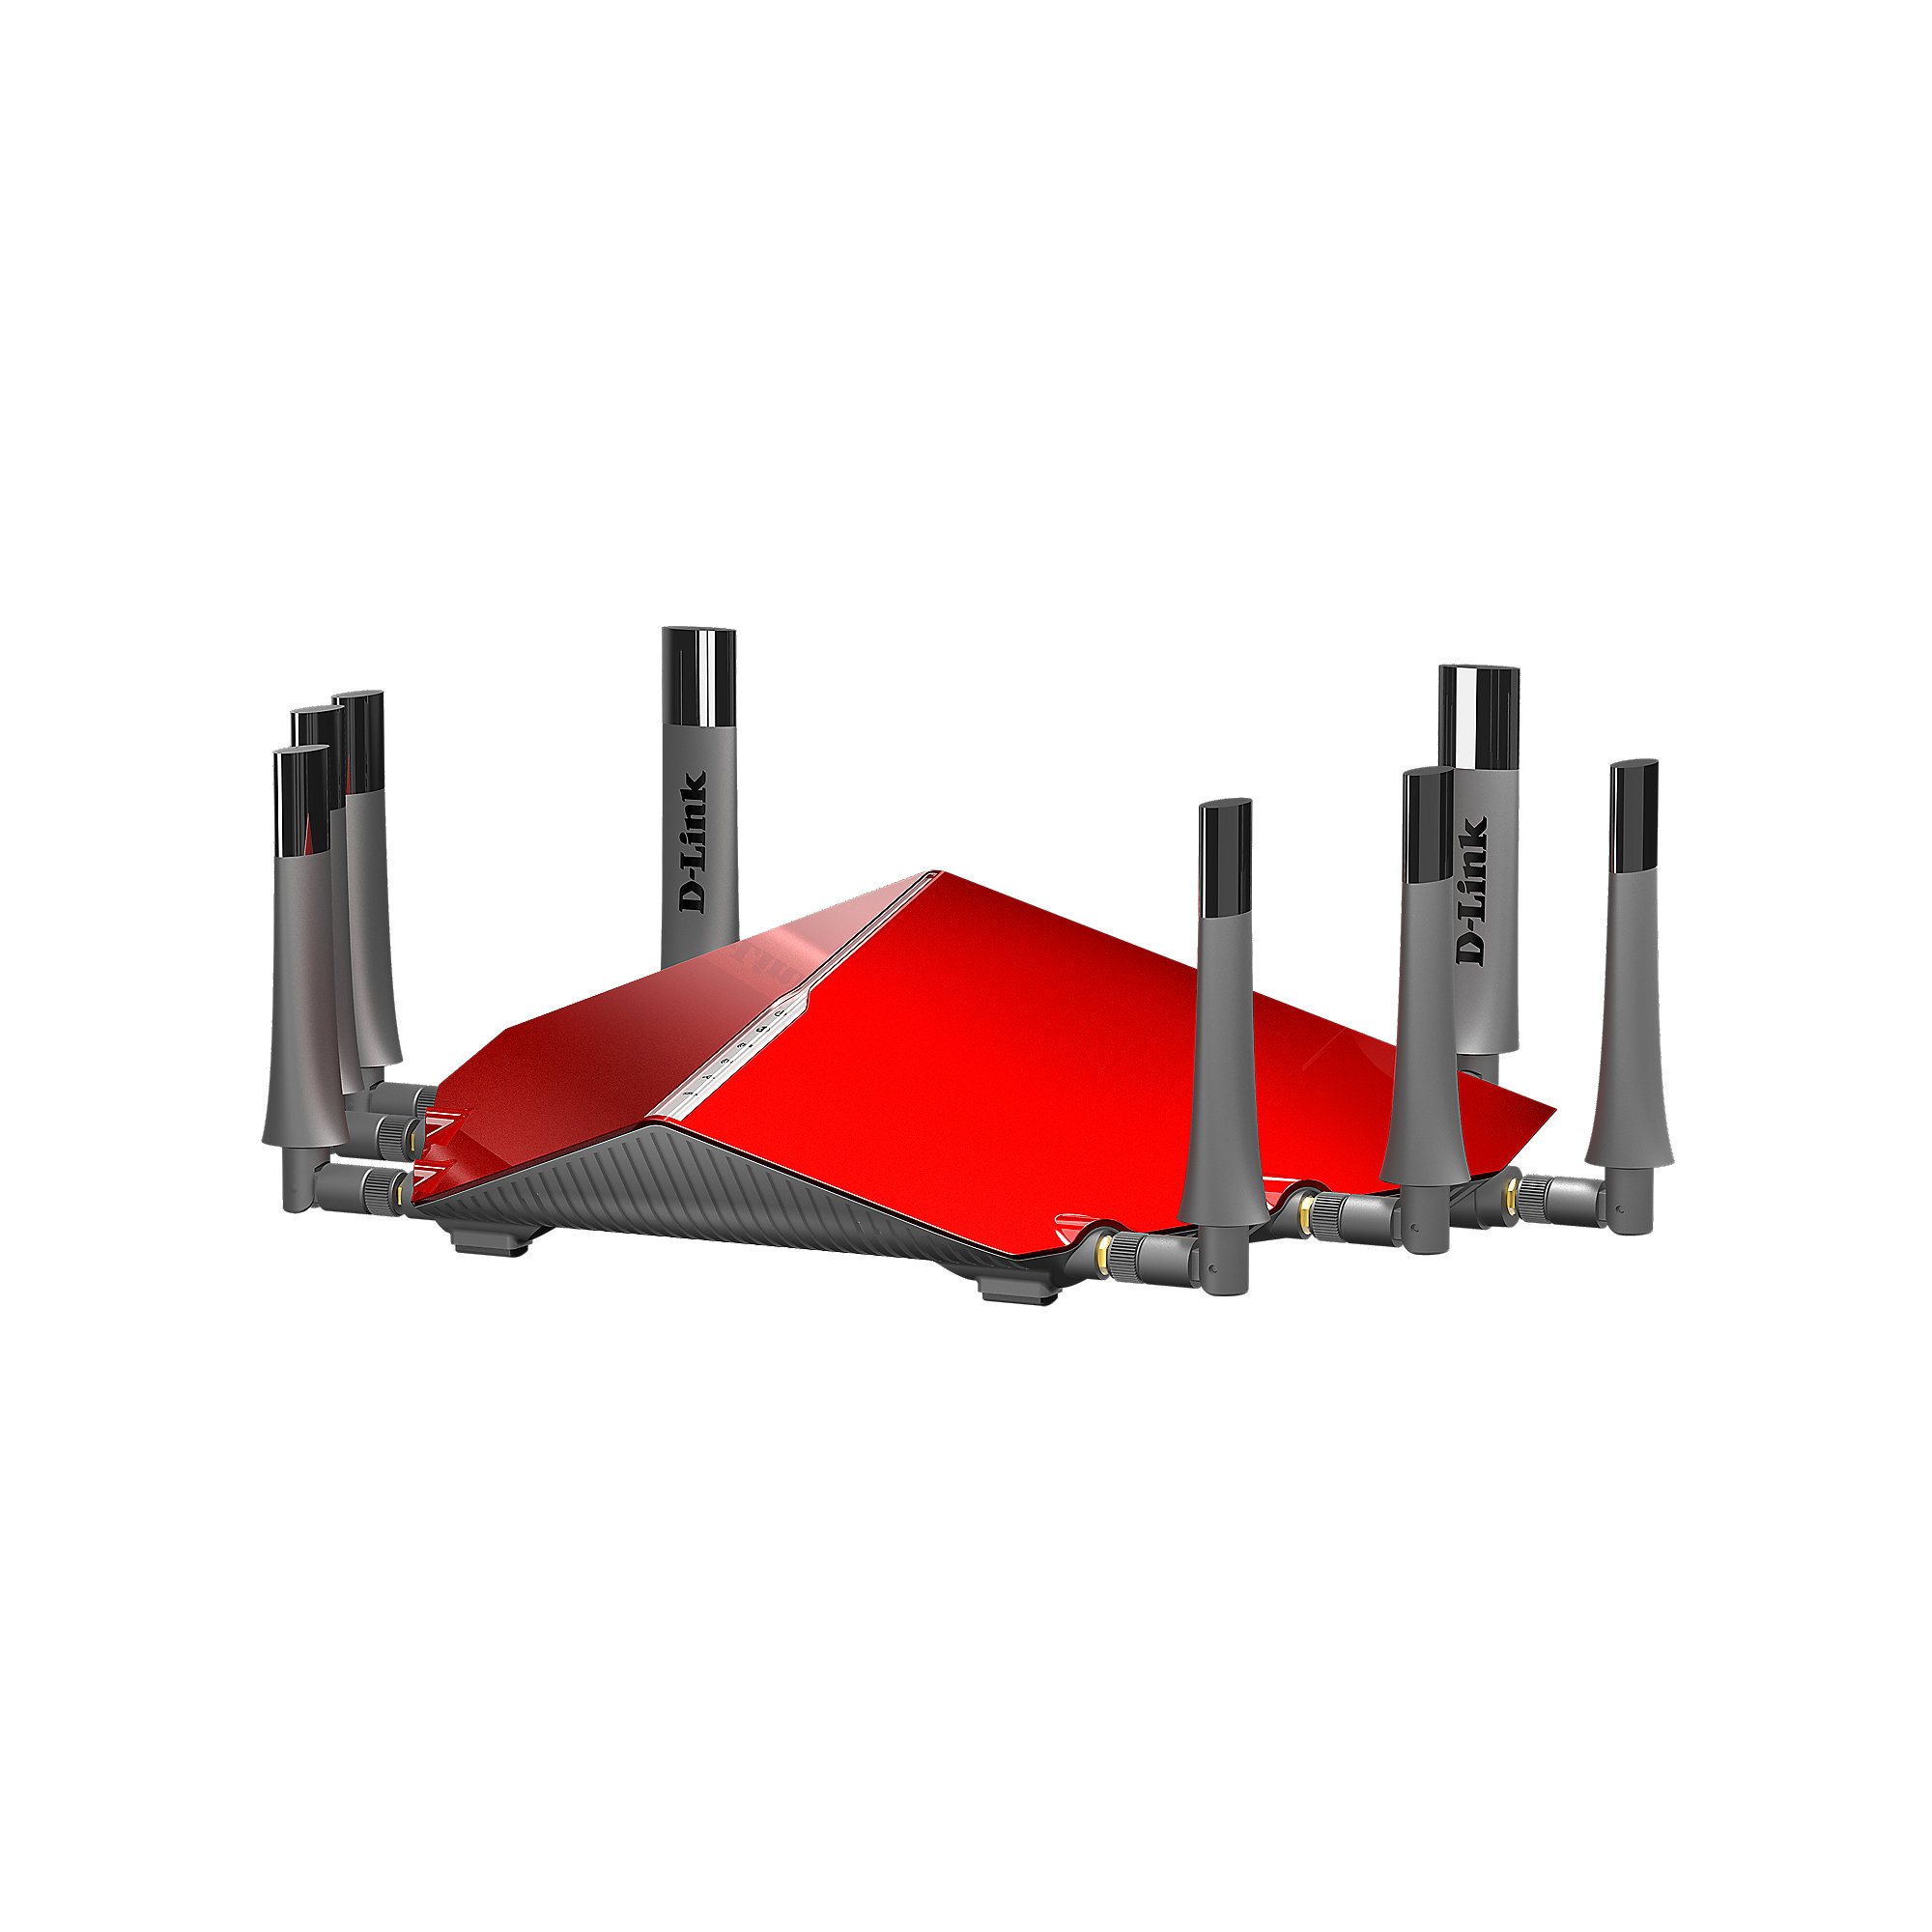 D-Link AC5300 DIR-895L Triband 5300Mbit Wireless Gigabit Router